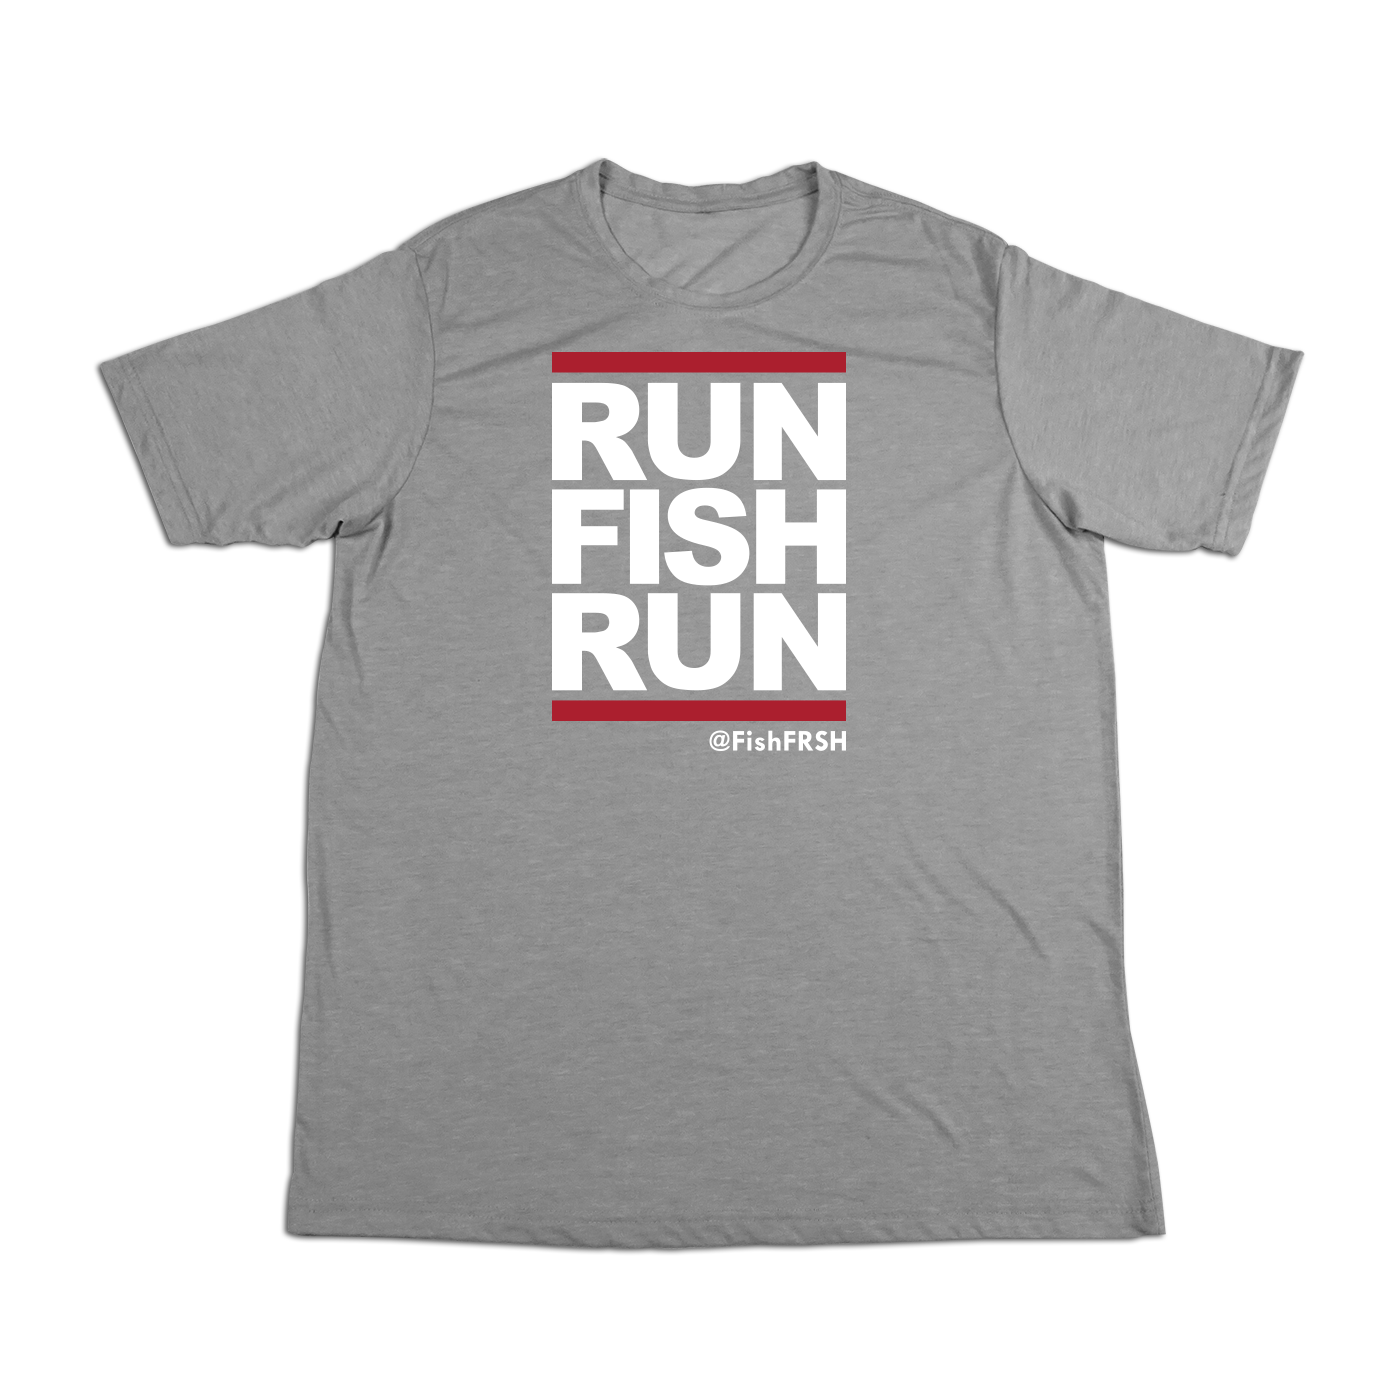 #RUNFISHRUN Soft Short Sleeve Shirt - White - Hat Mount for GoPro